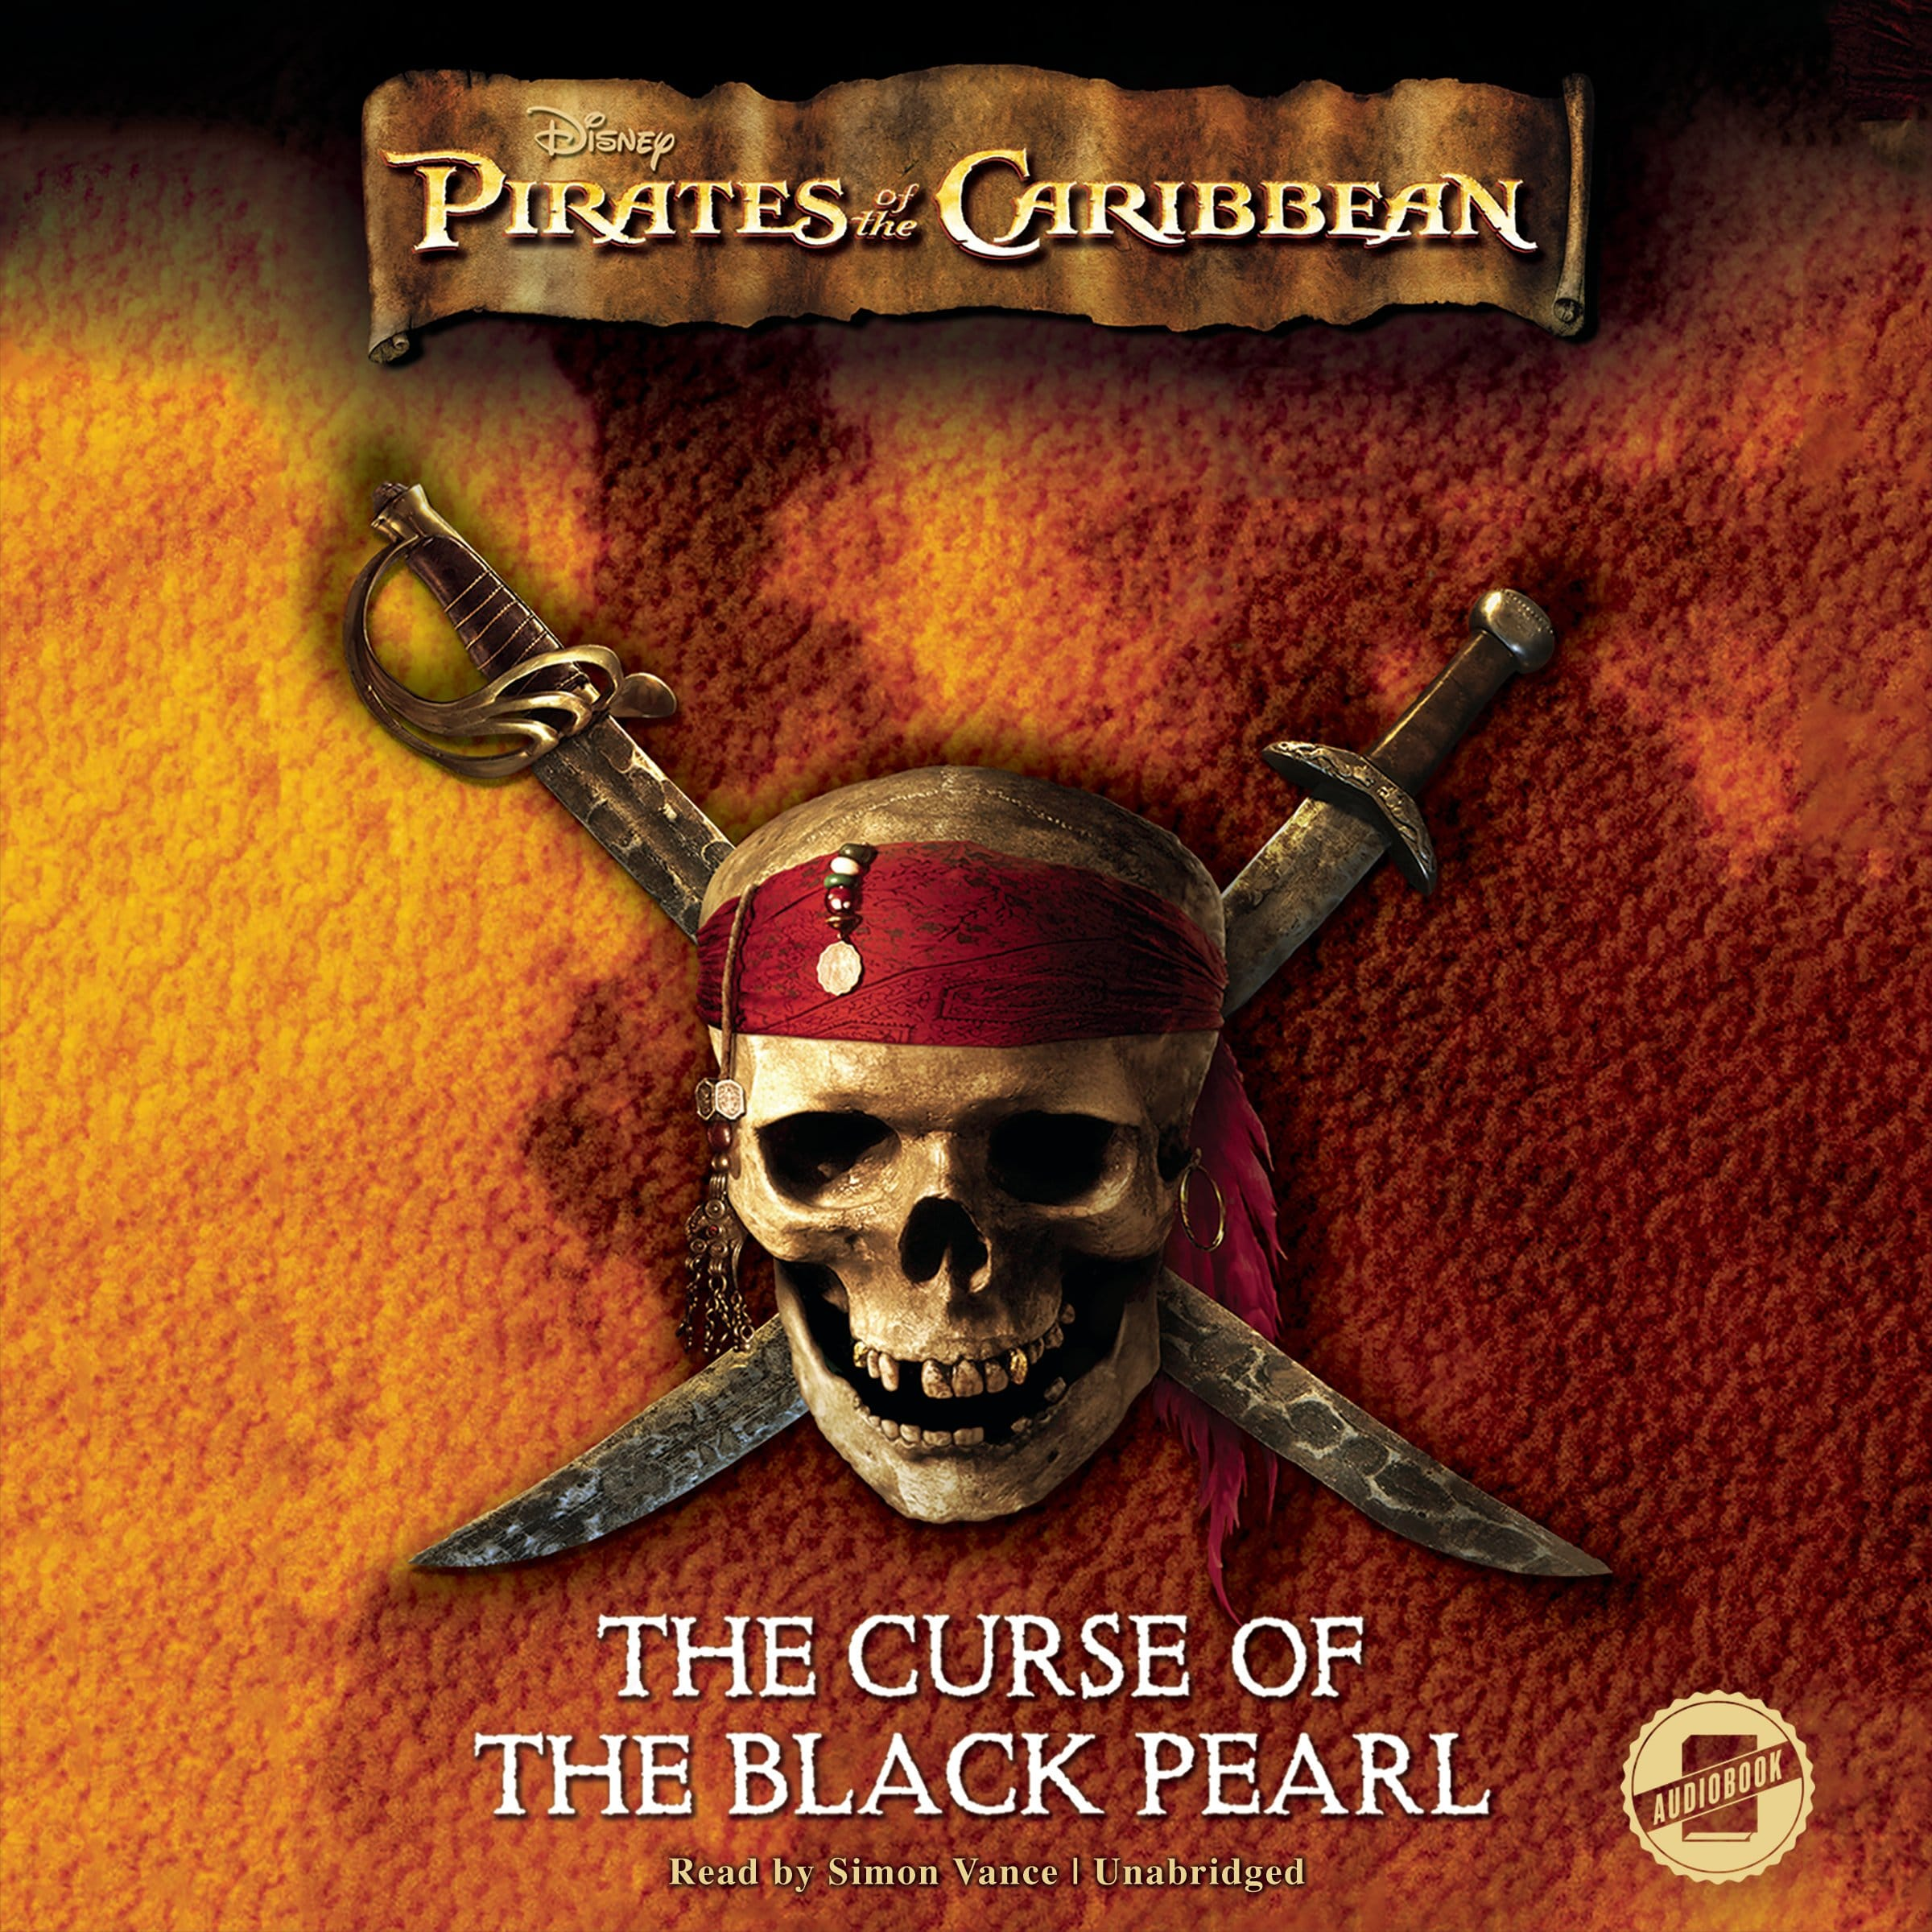 pirates of the caribbean poster high quality HD printable wallpapers official cool skull poster